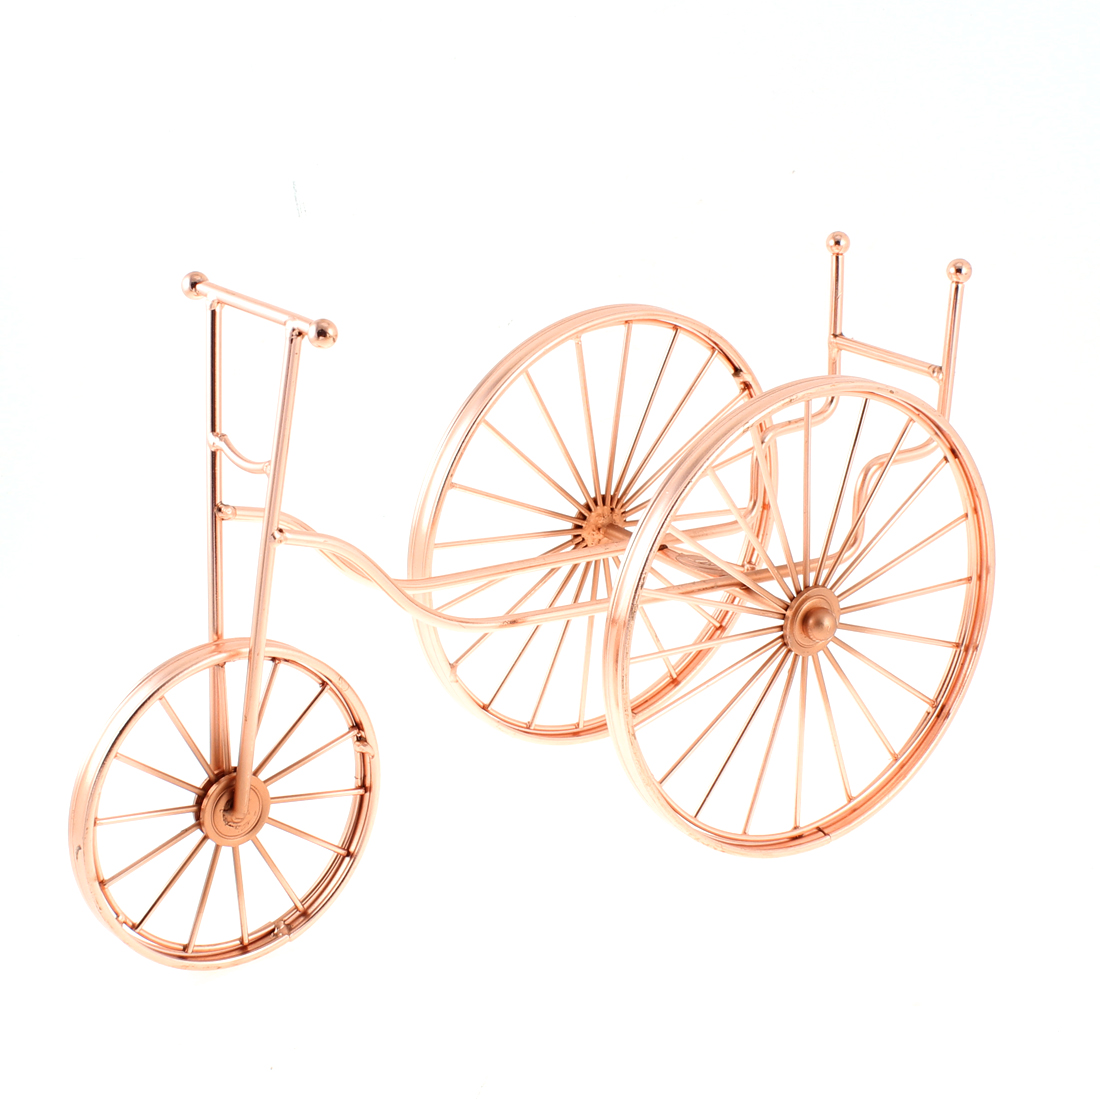 Countertop Tricycle Shape Wine Bottle Holder Rack Organizer Display Gold Tone